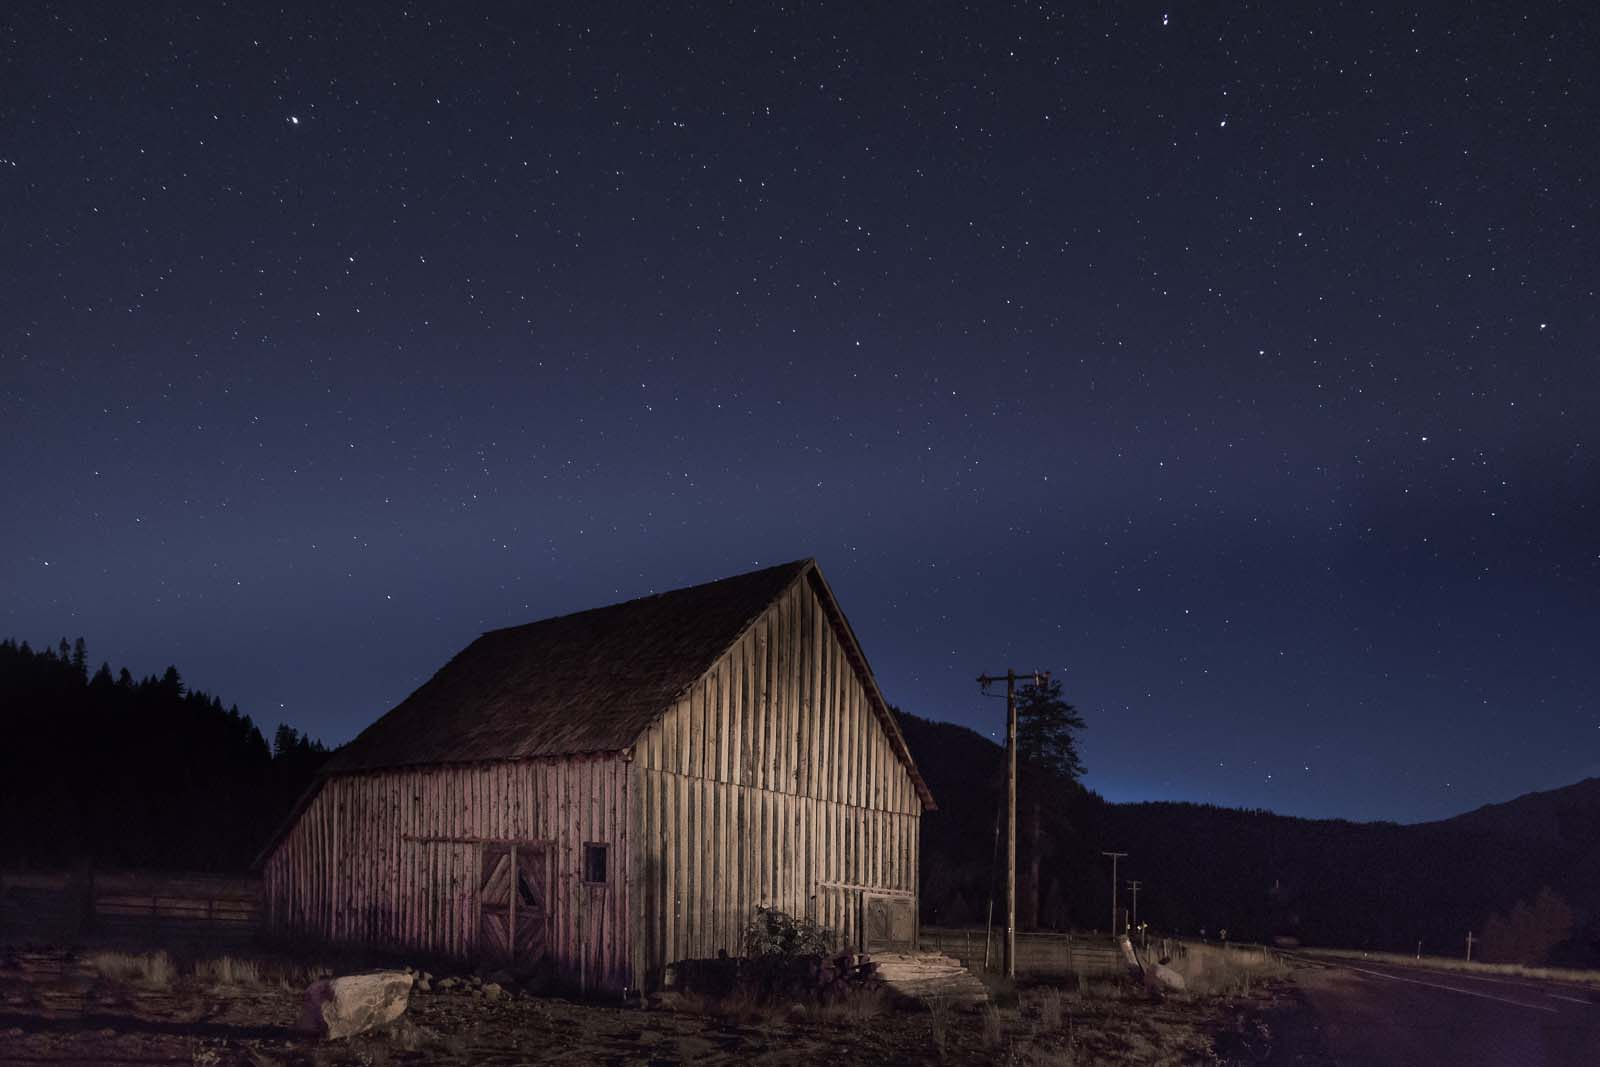 Light painting on a barn, photography at night, shooting after sunset